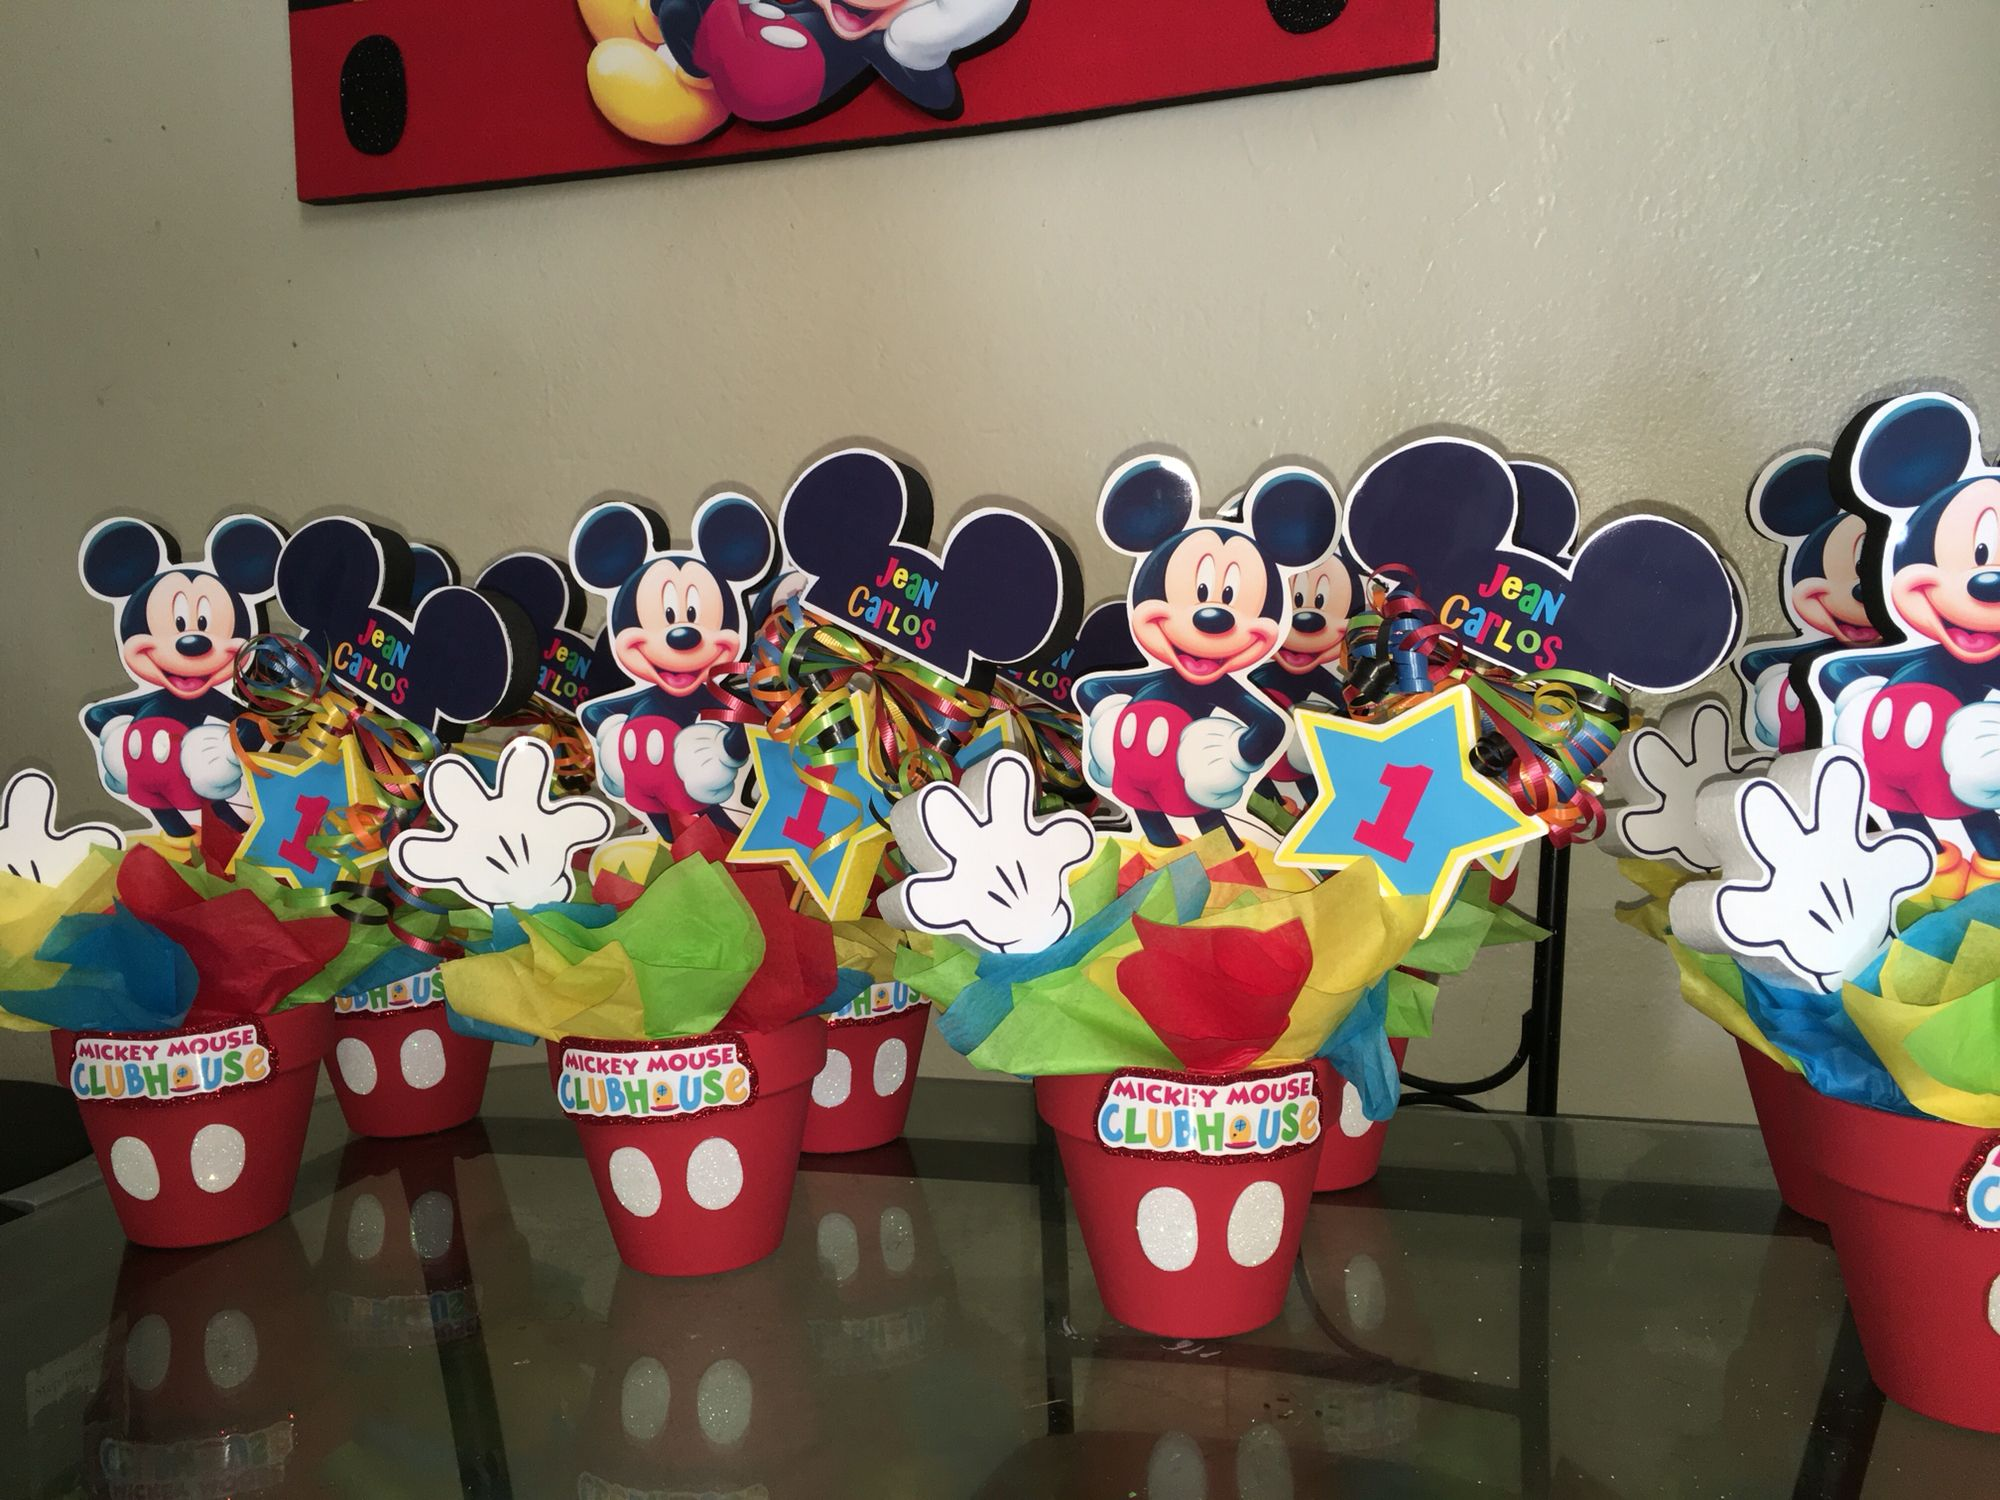 Best 25+ Mickey mouse clubhouse decorations ideas on Pinterest ...